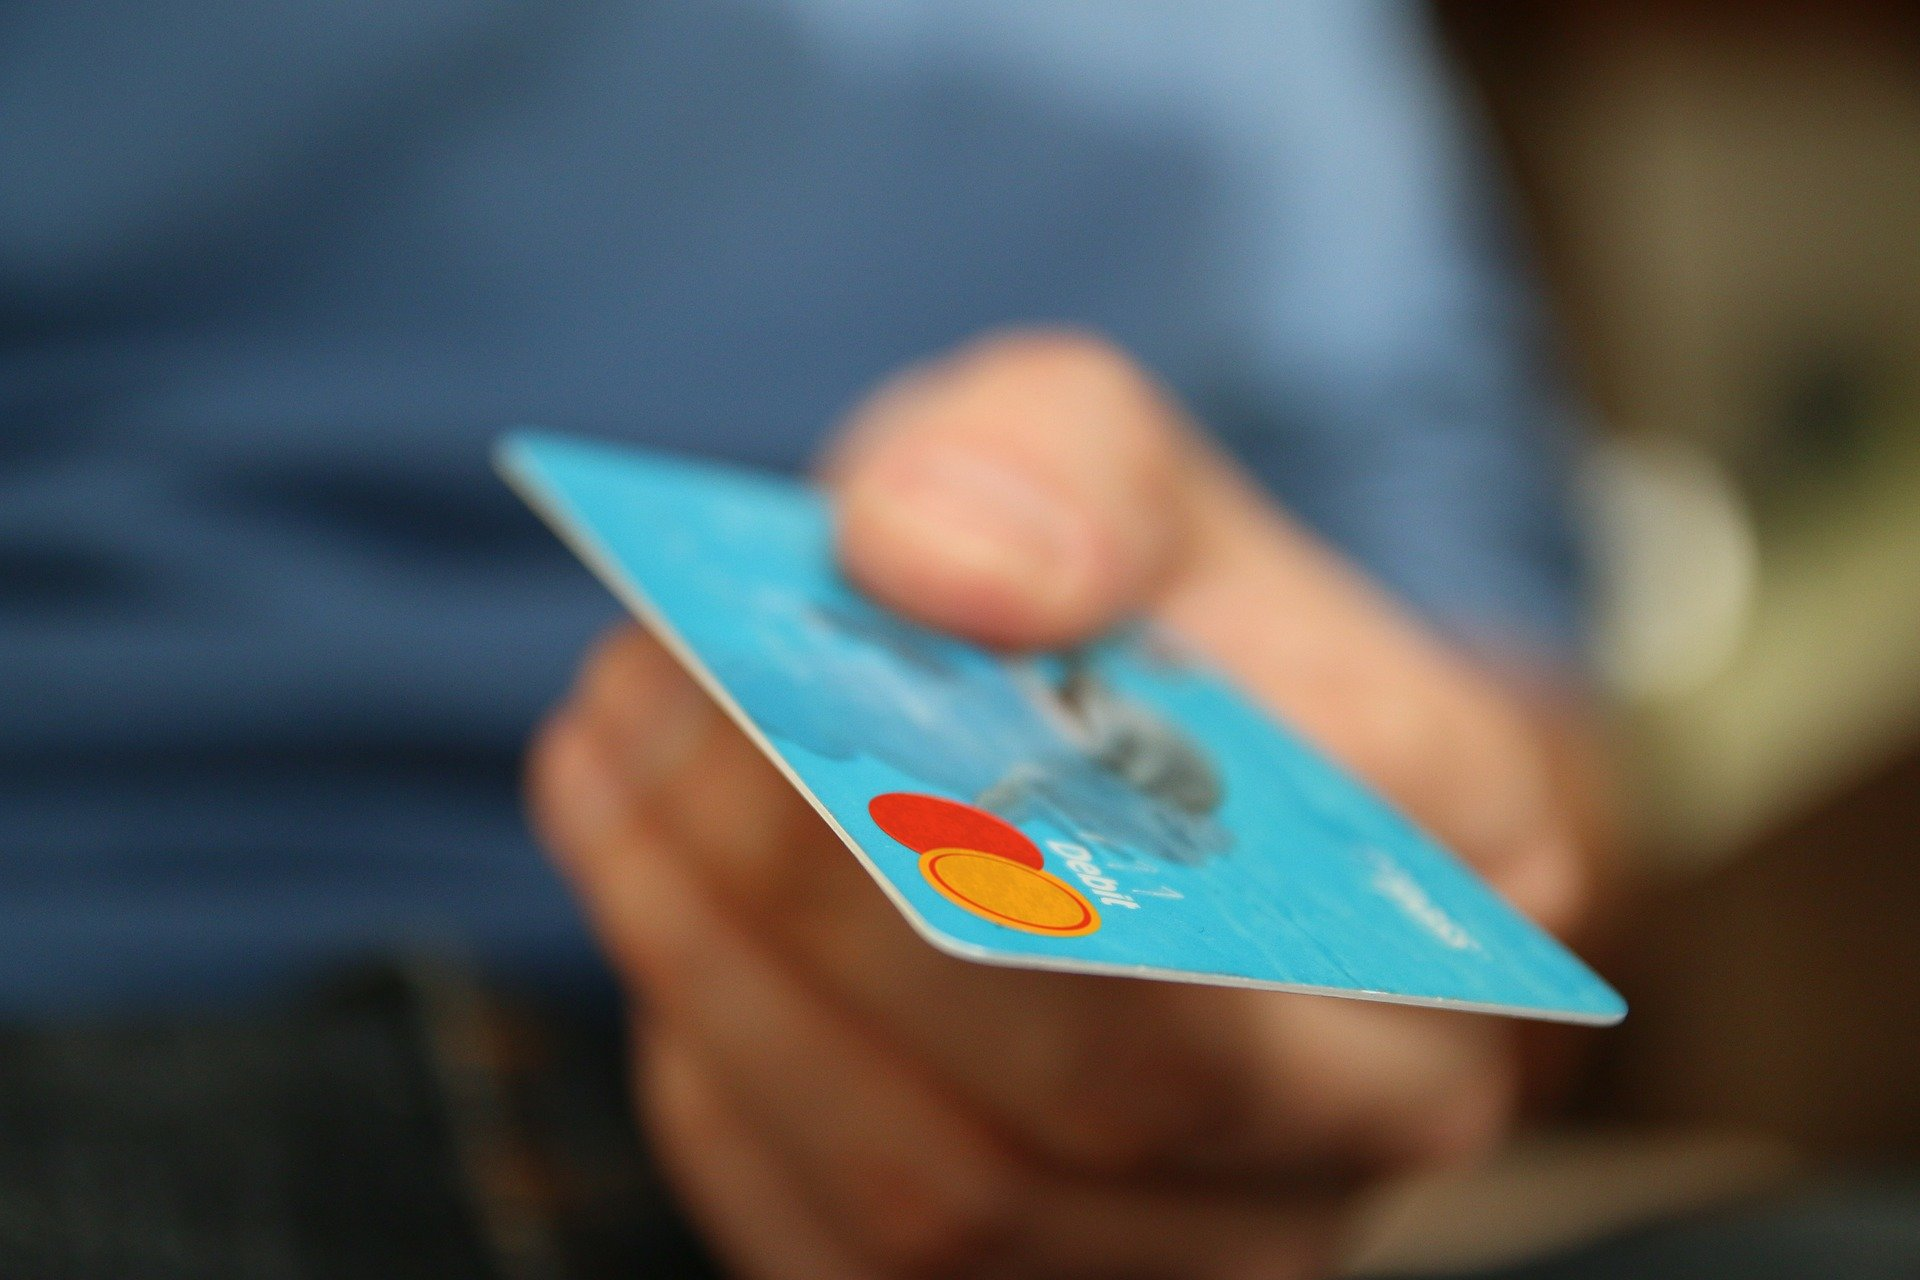 Security flaw detected for the second time in credit cards